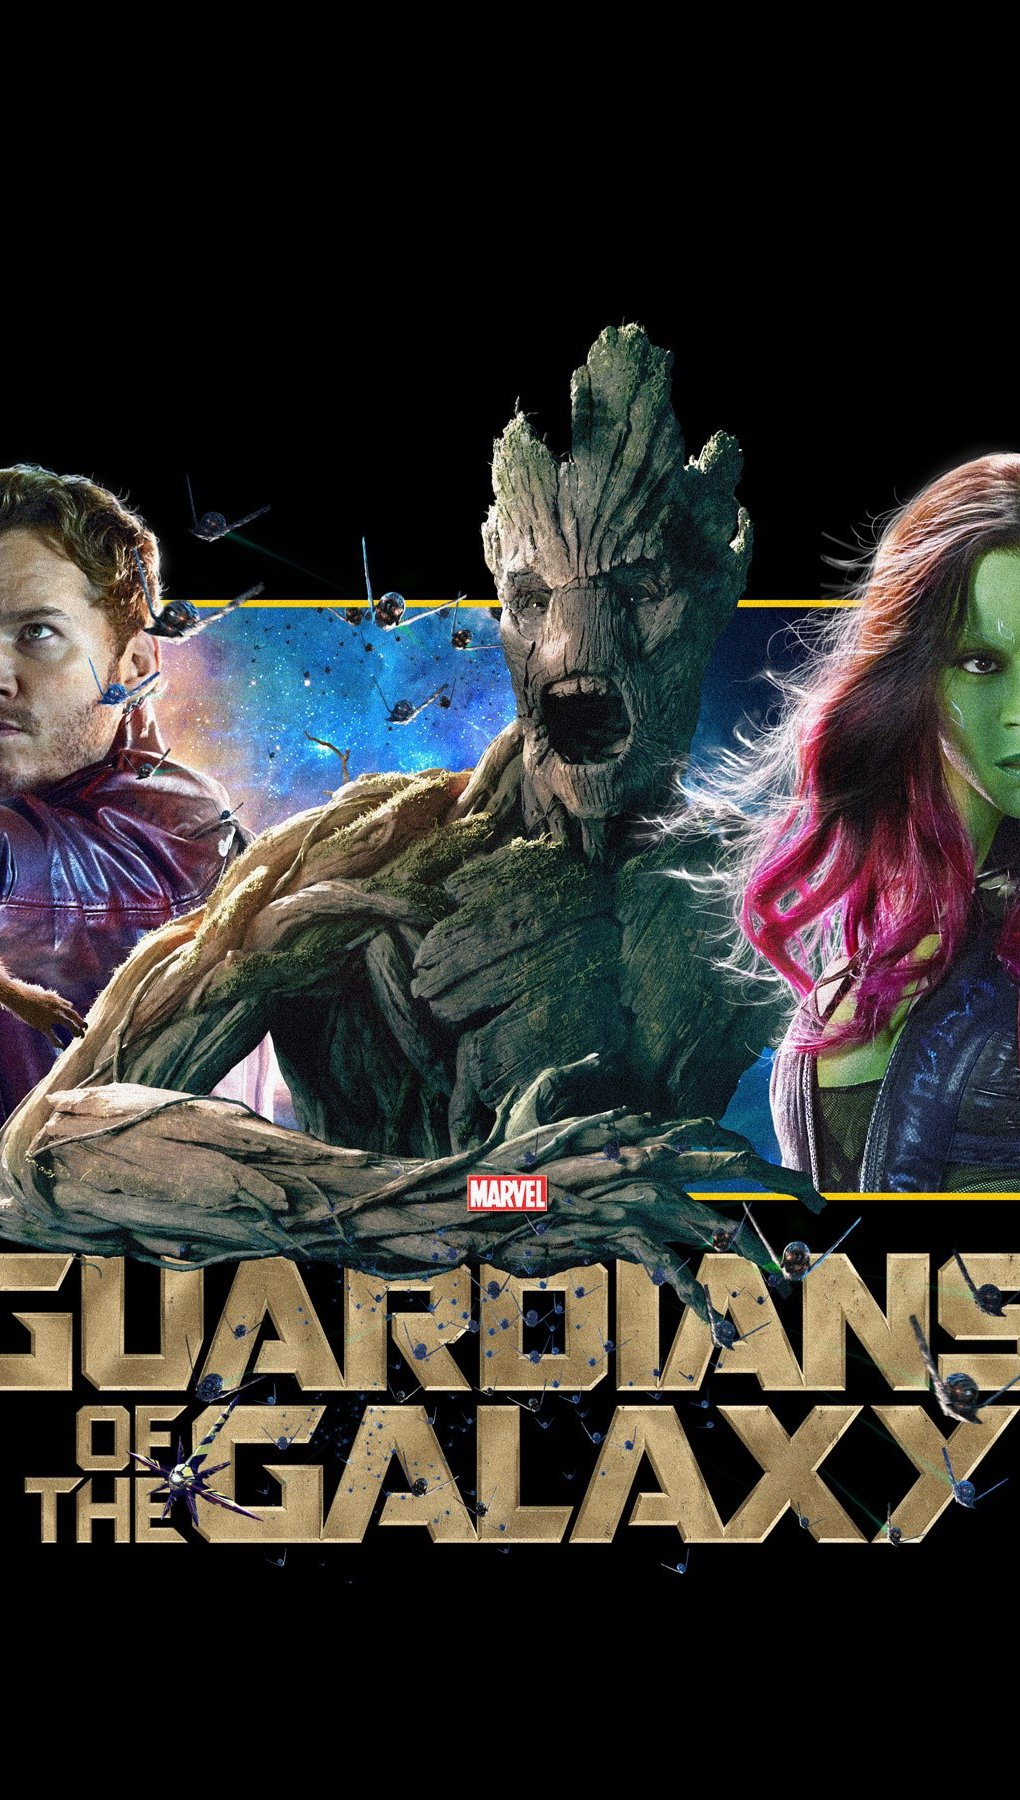 Wallpaper Banner of Guardians of the Galaxy Vertical